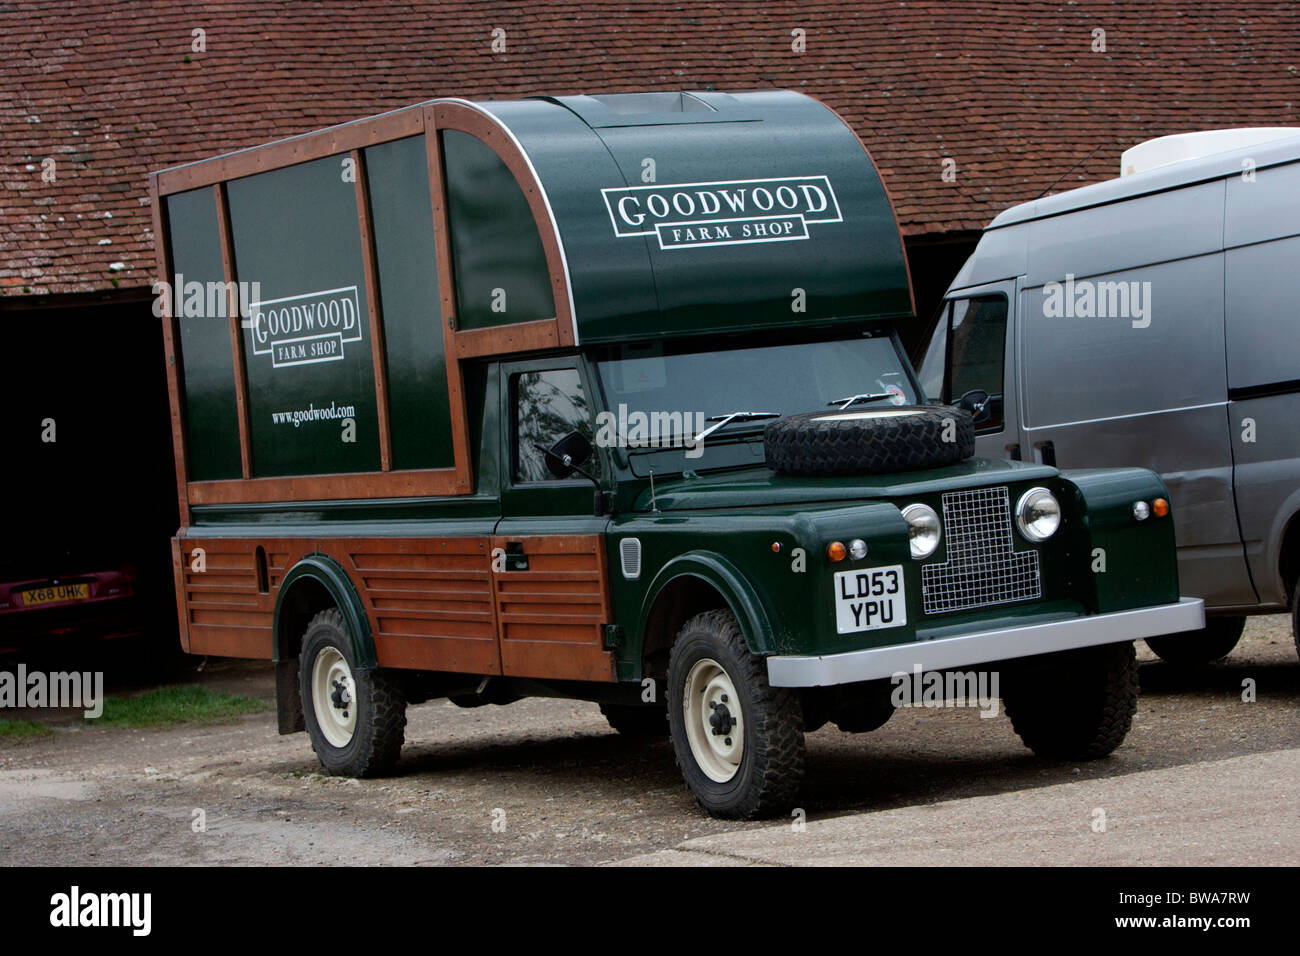 A green Goodwood Farm Shop Land Rover pictured at Goodwood c4492e488fdb6